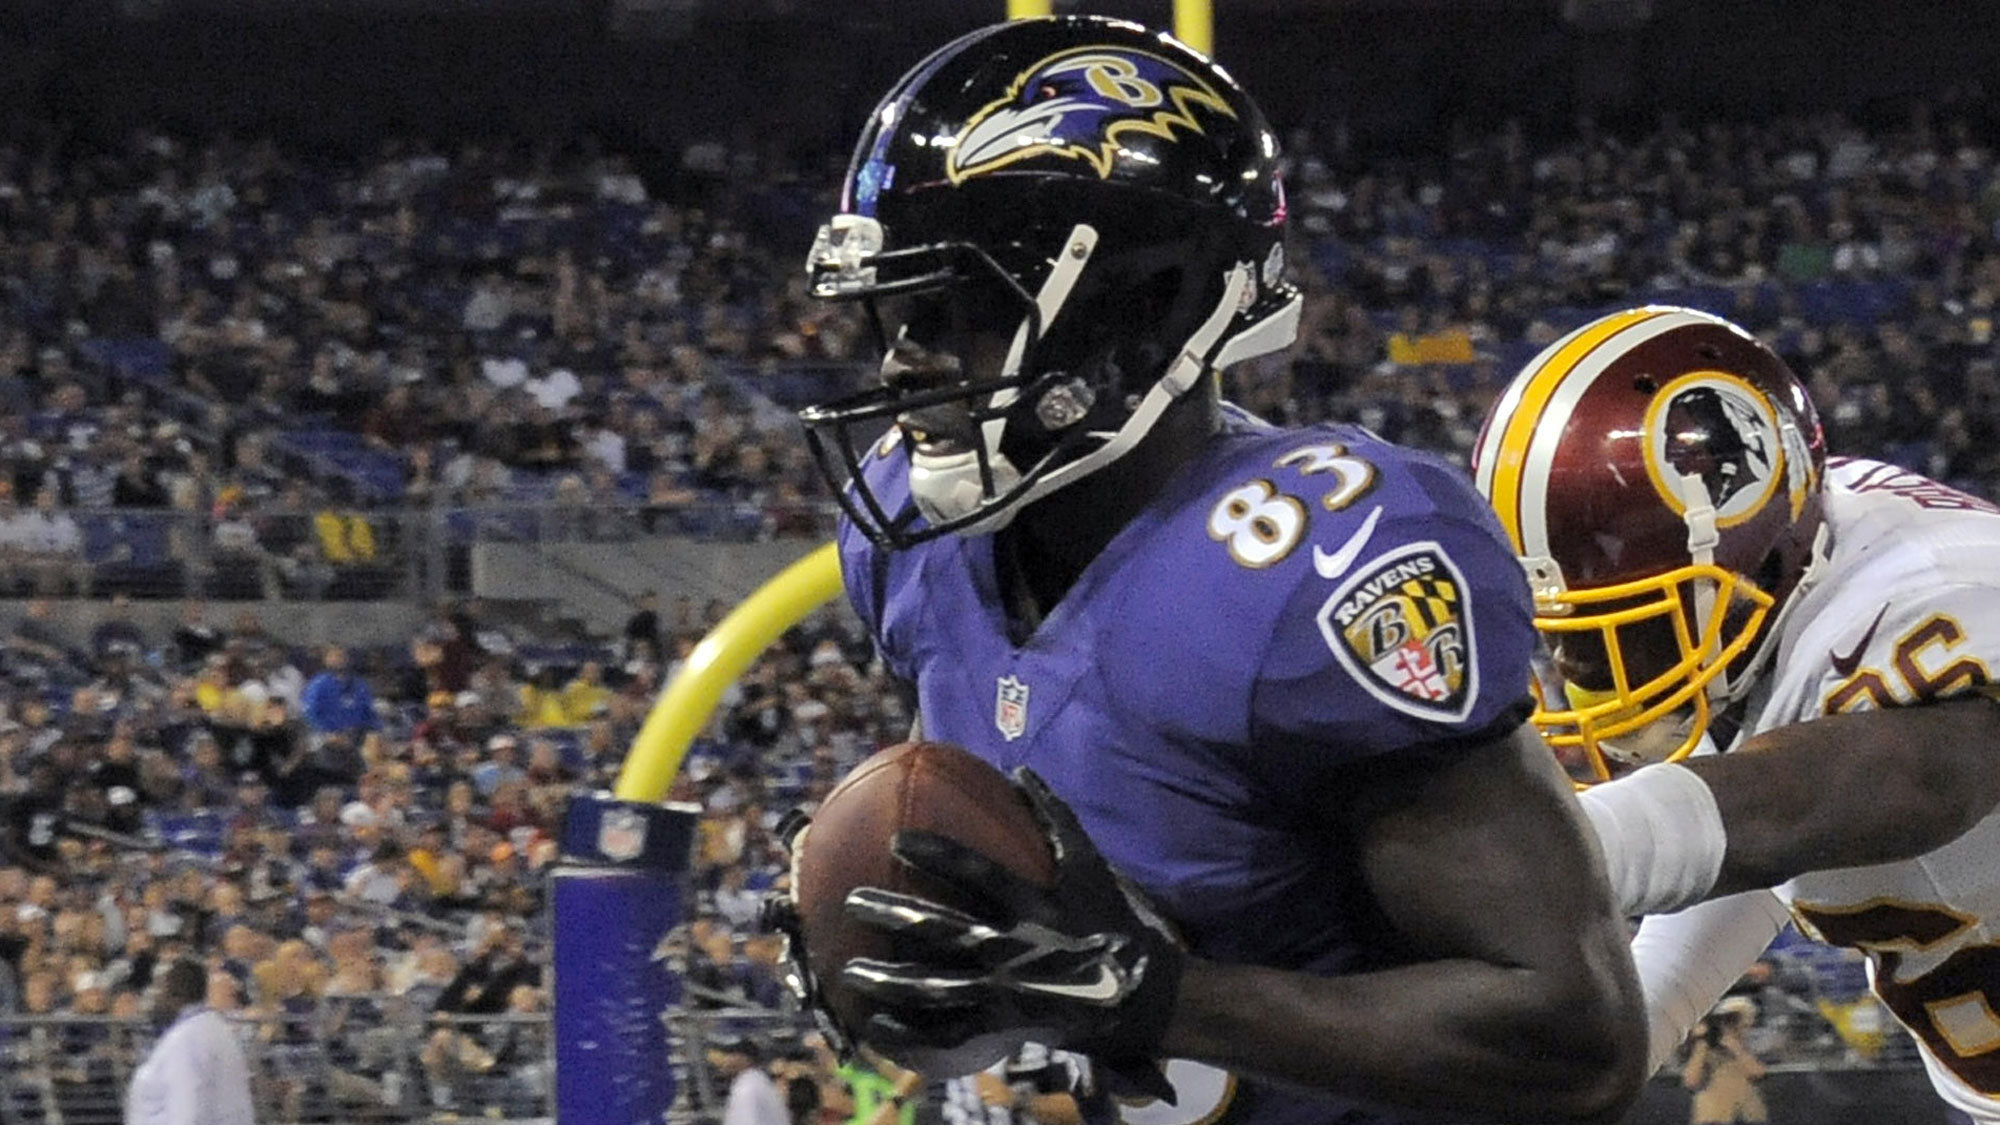 Ravens practice squad WR Deonte Thompson to imitate Colts standout